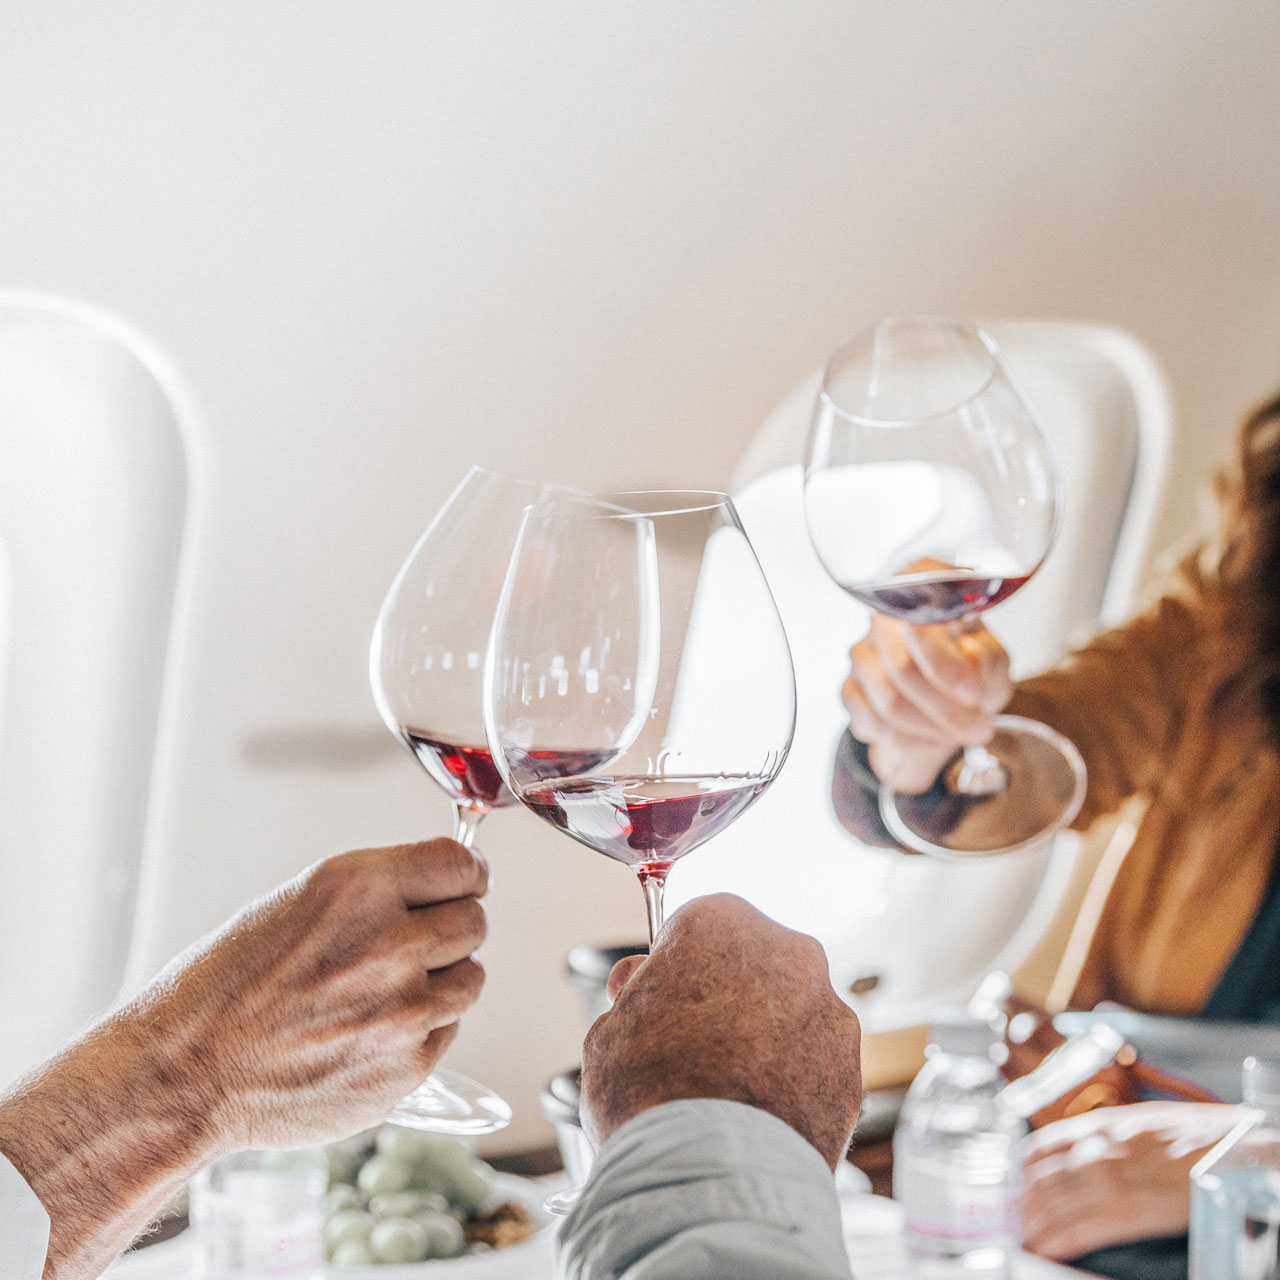 The VistaJet Wine Club